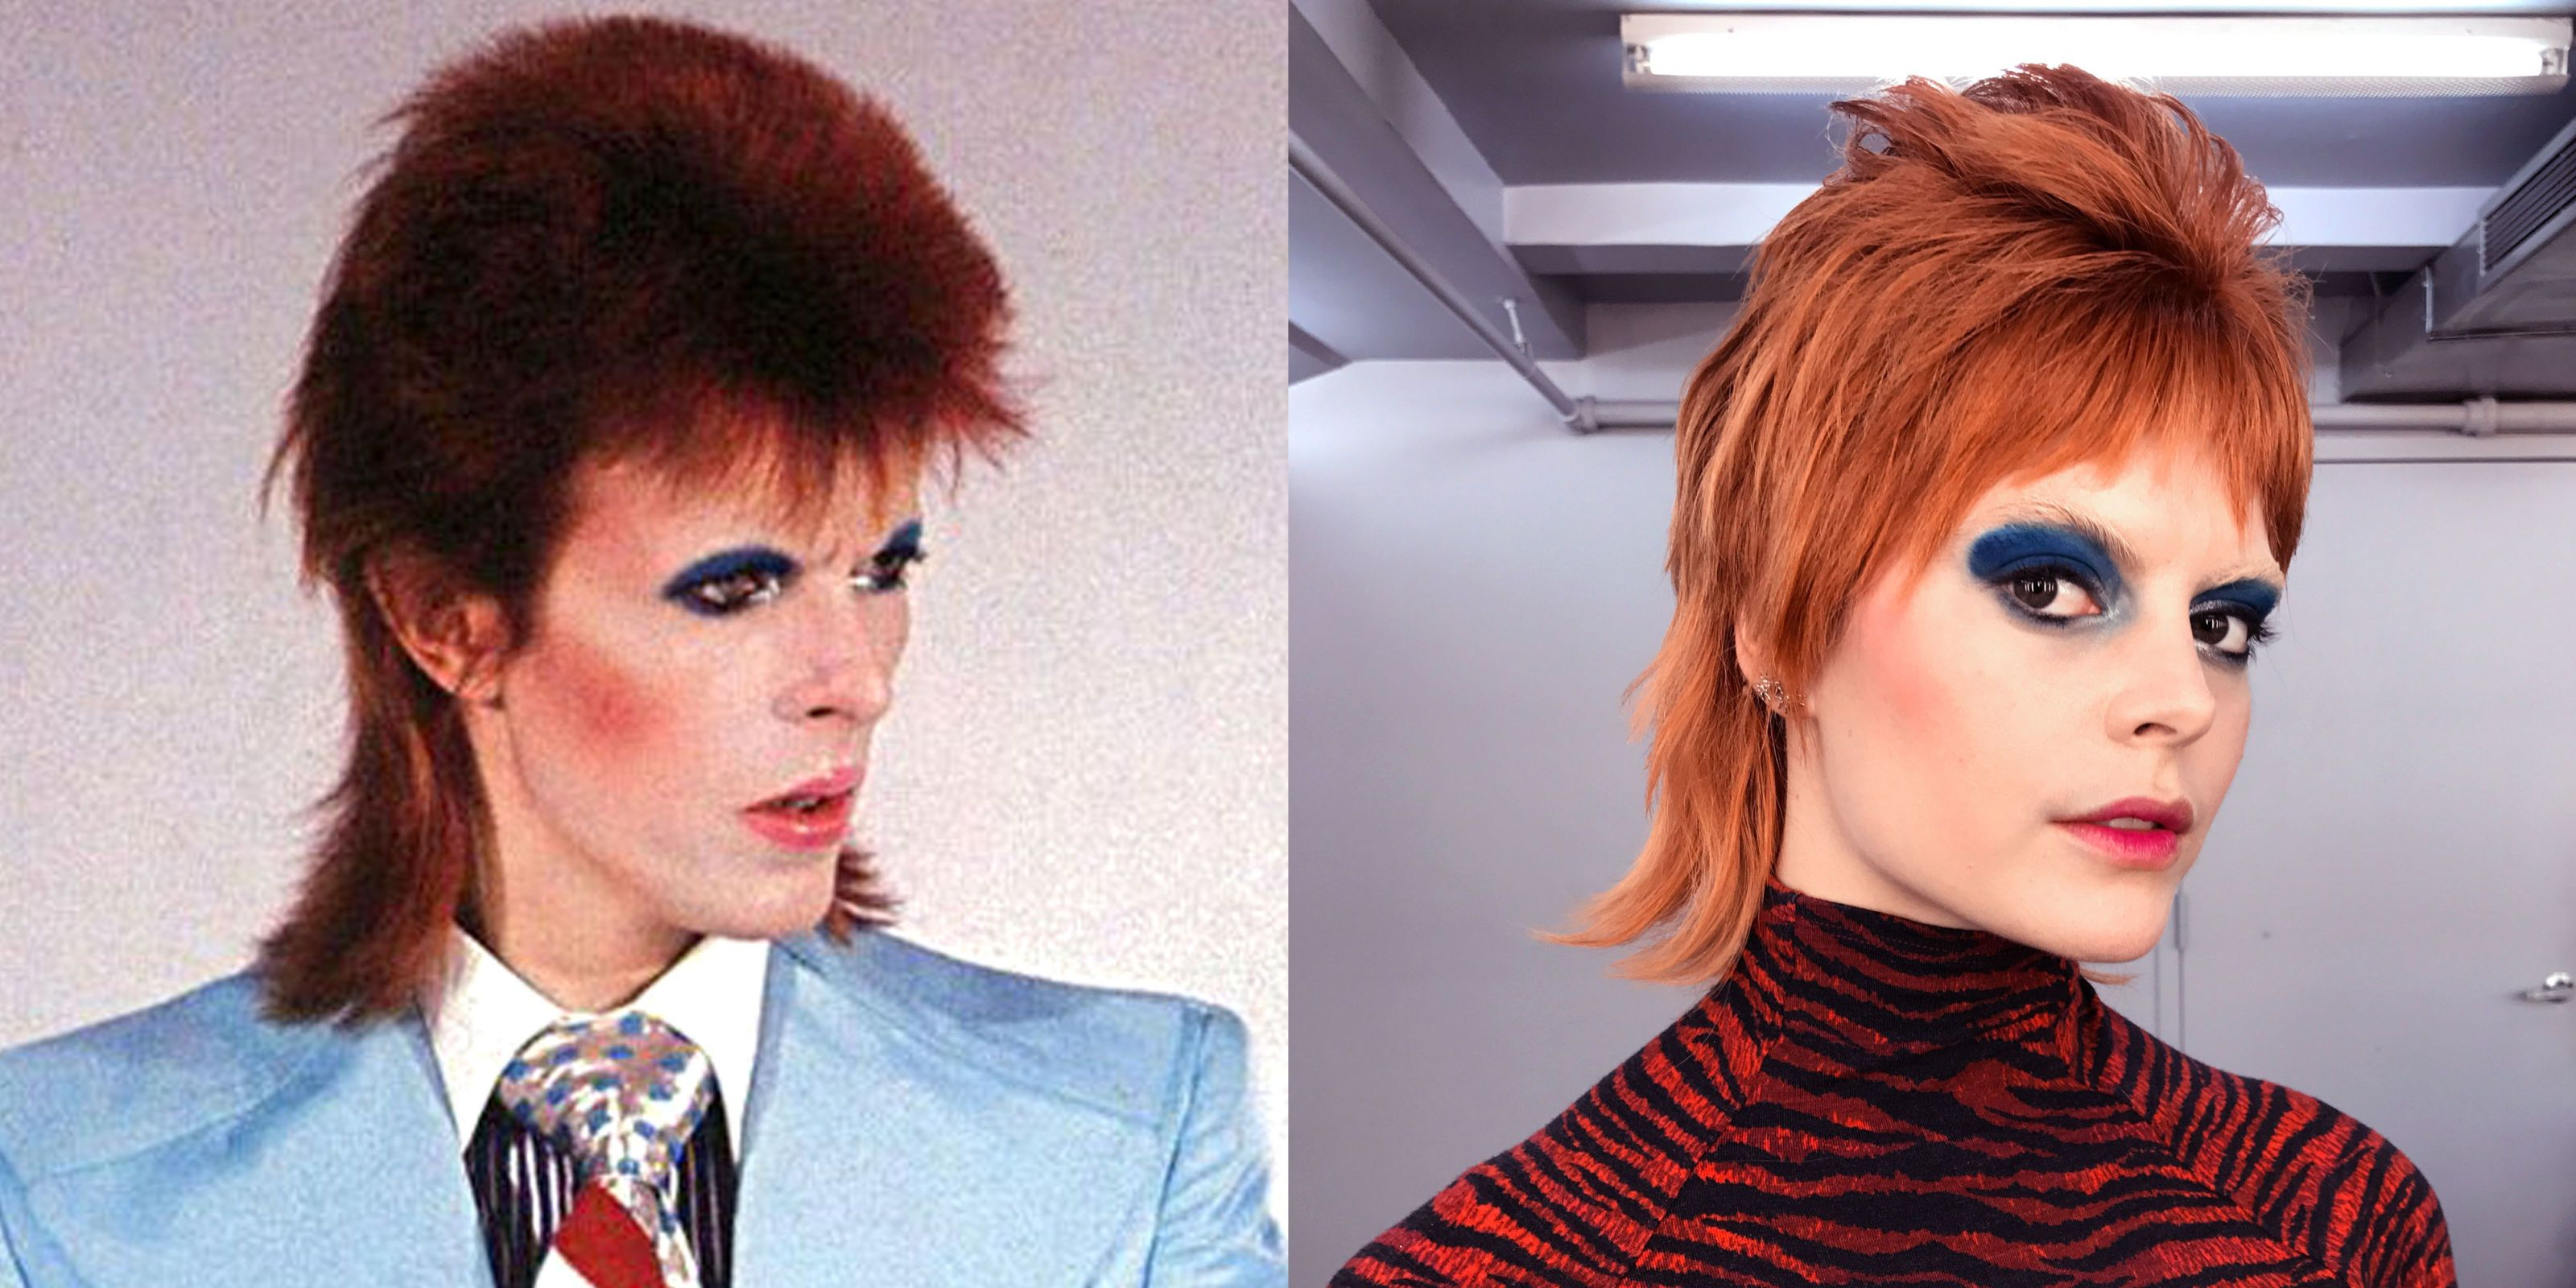 7 Things I Learned from Dressing Up as David Bowie for Halloween